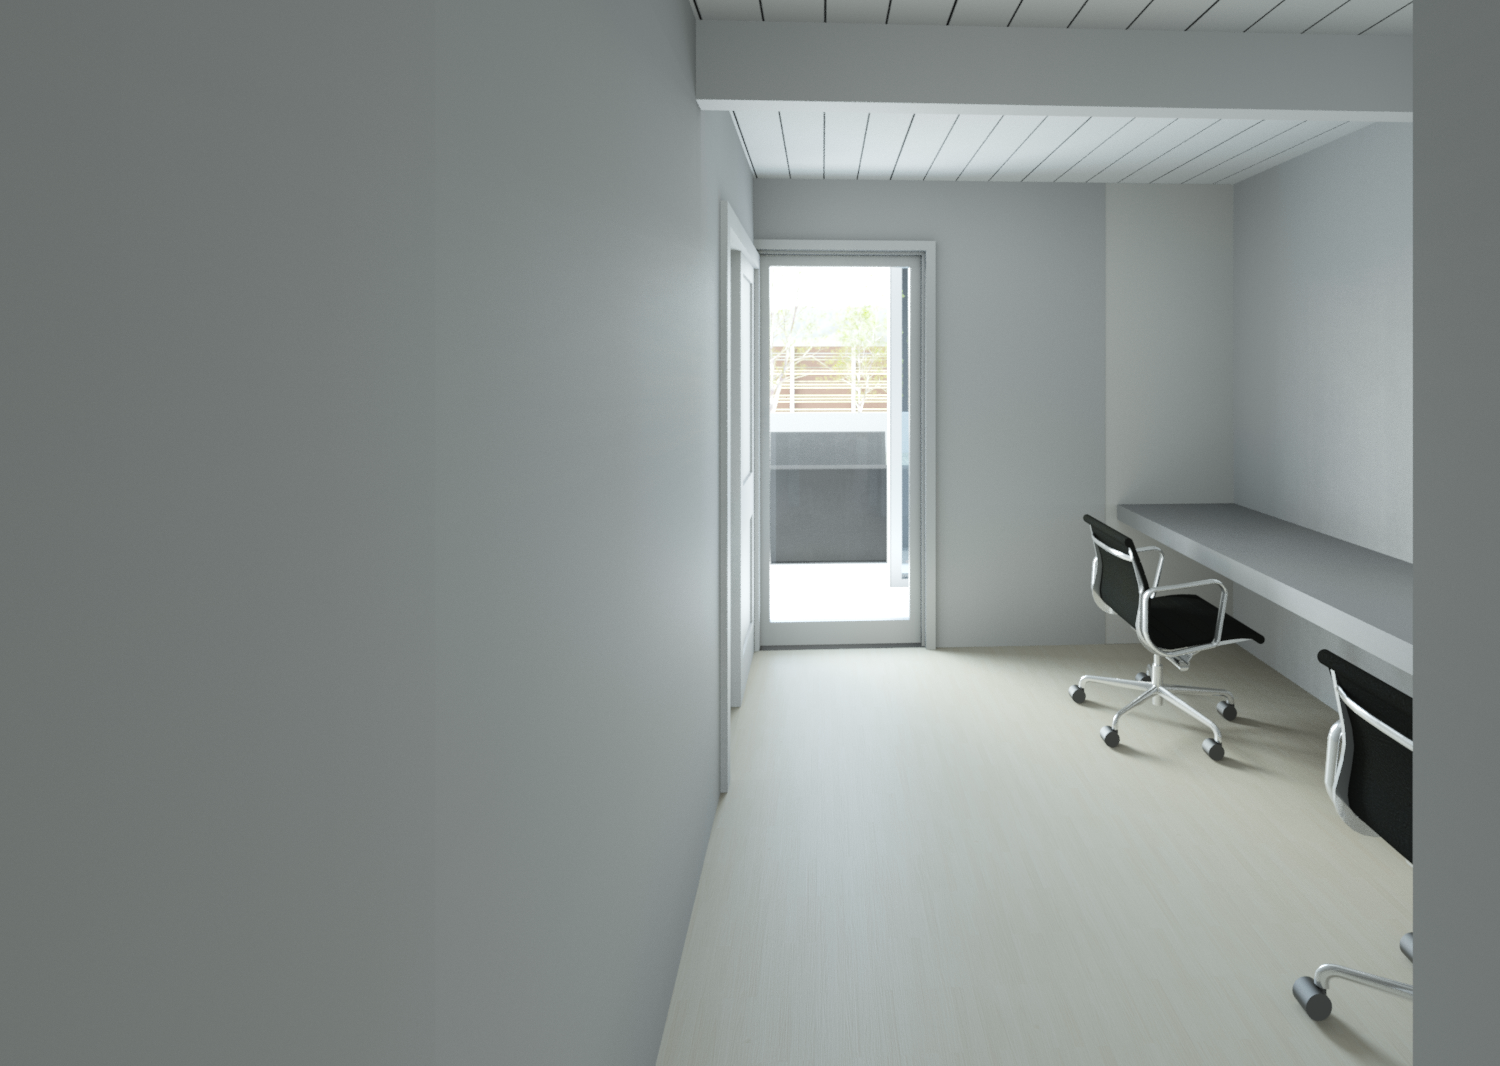 KP-06 _3D_View_-_Office_to_rear_patio.png